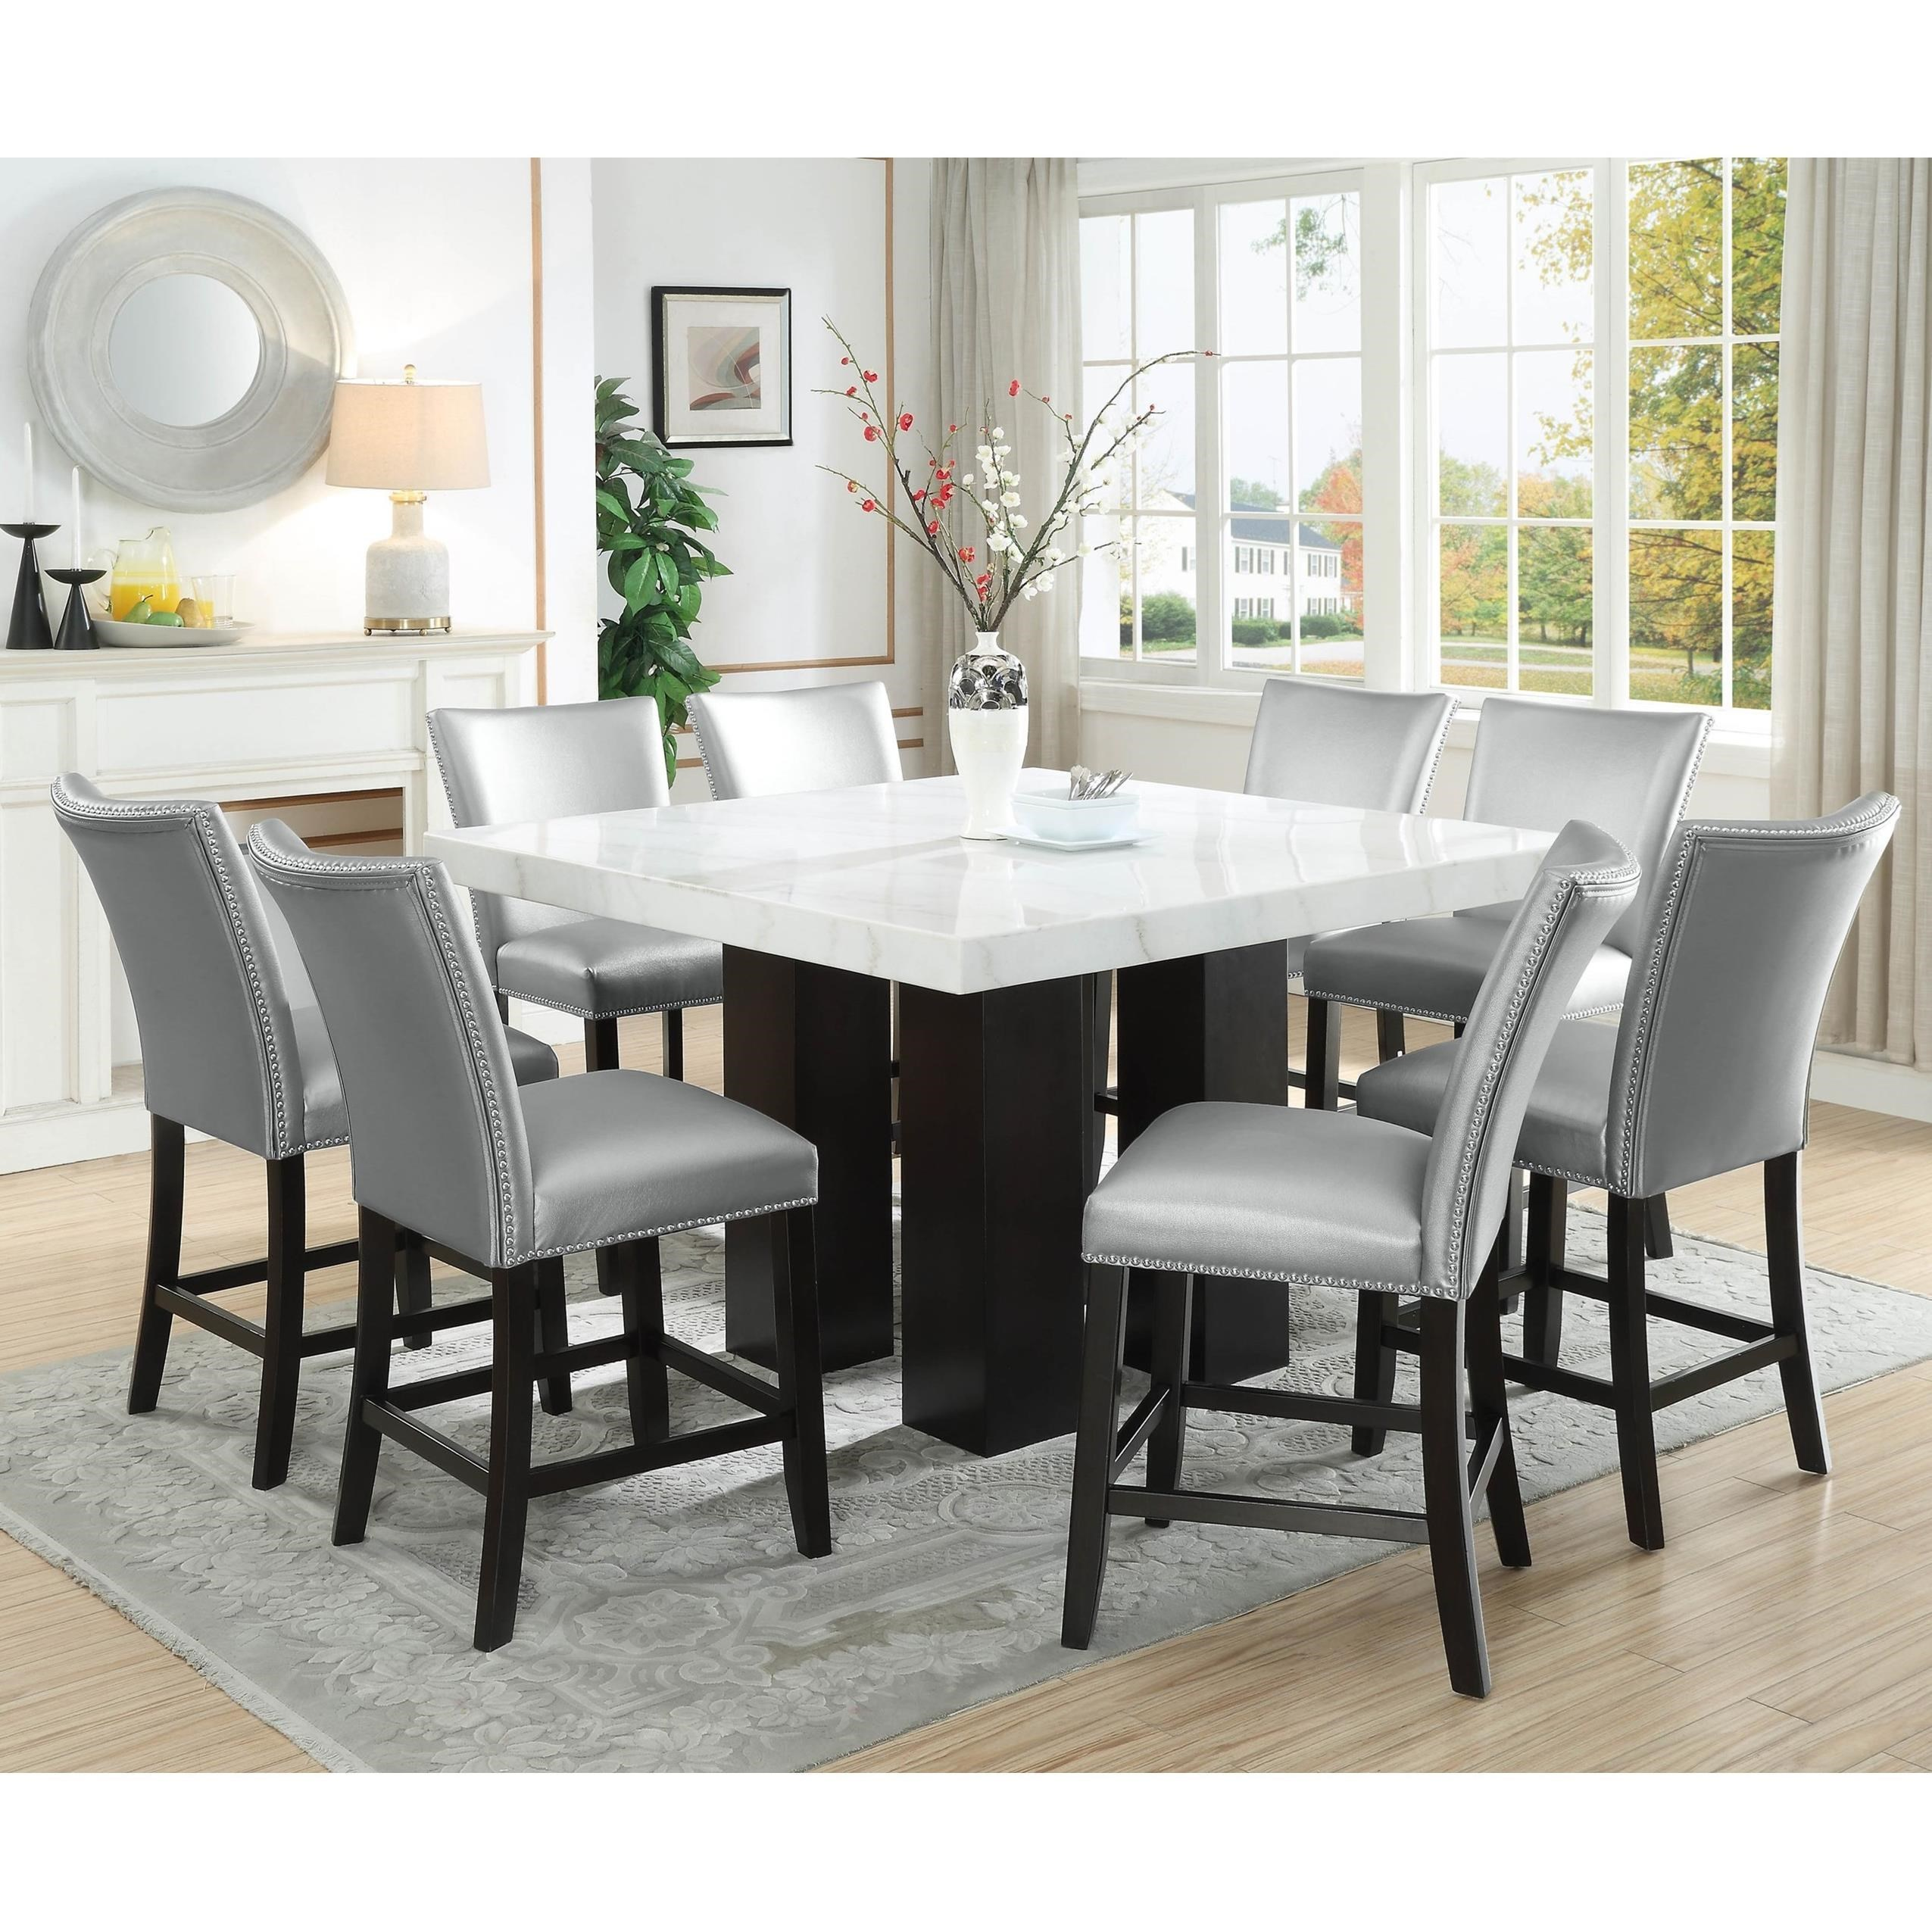 9 Piece Counter Height Dining Set with Marble Top